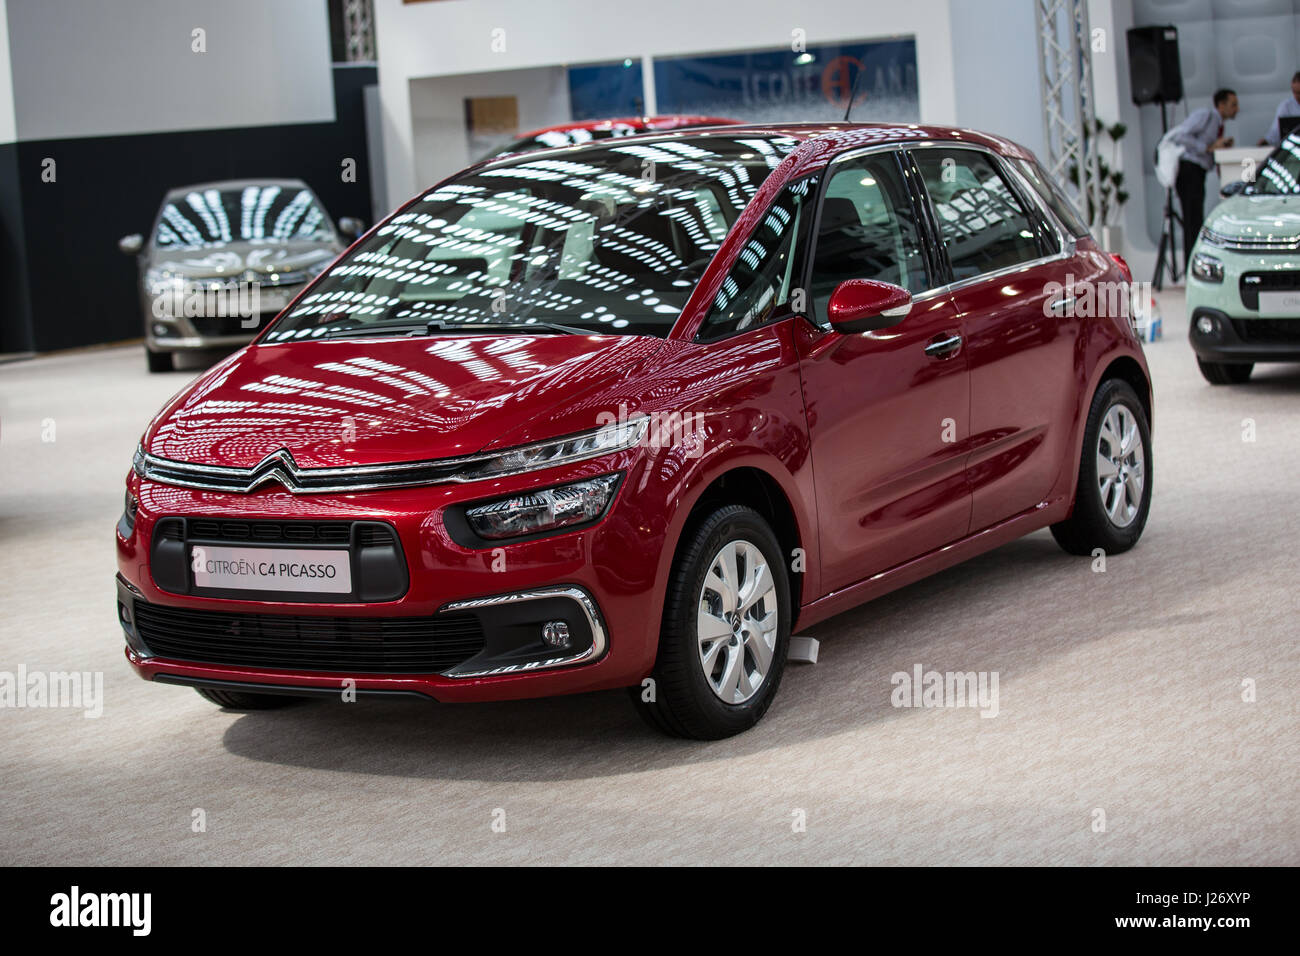 belgrade serbia march 23 2017 new citroen c4 picasso presented stock photo royalty free. Black Bedroom Furniture Sets. Home Design Ideas